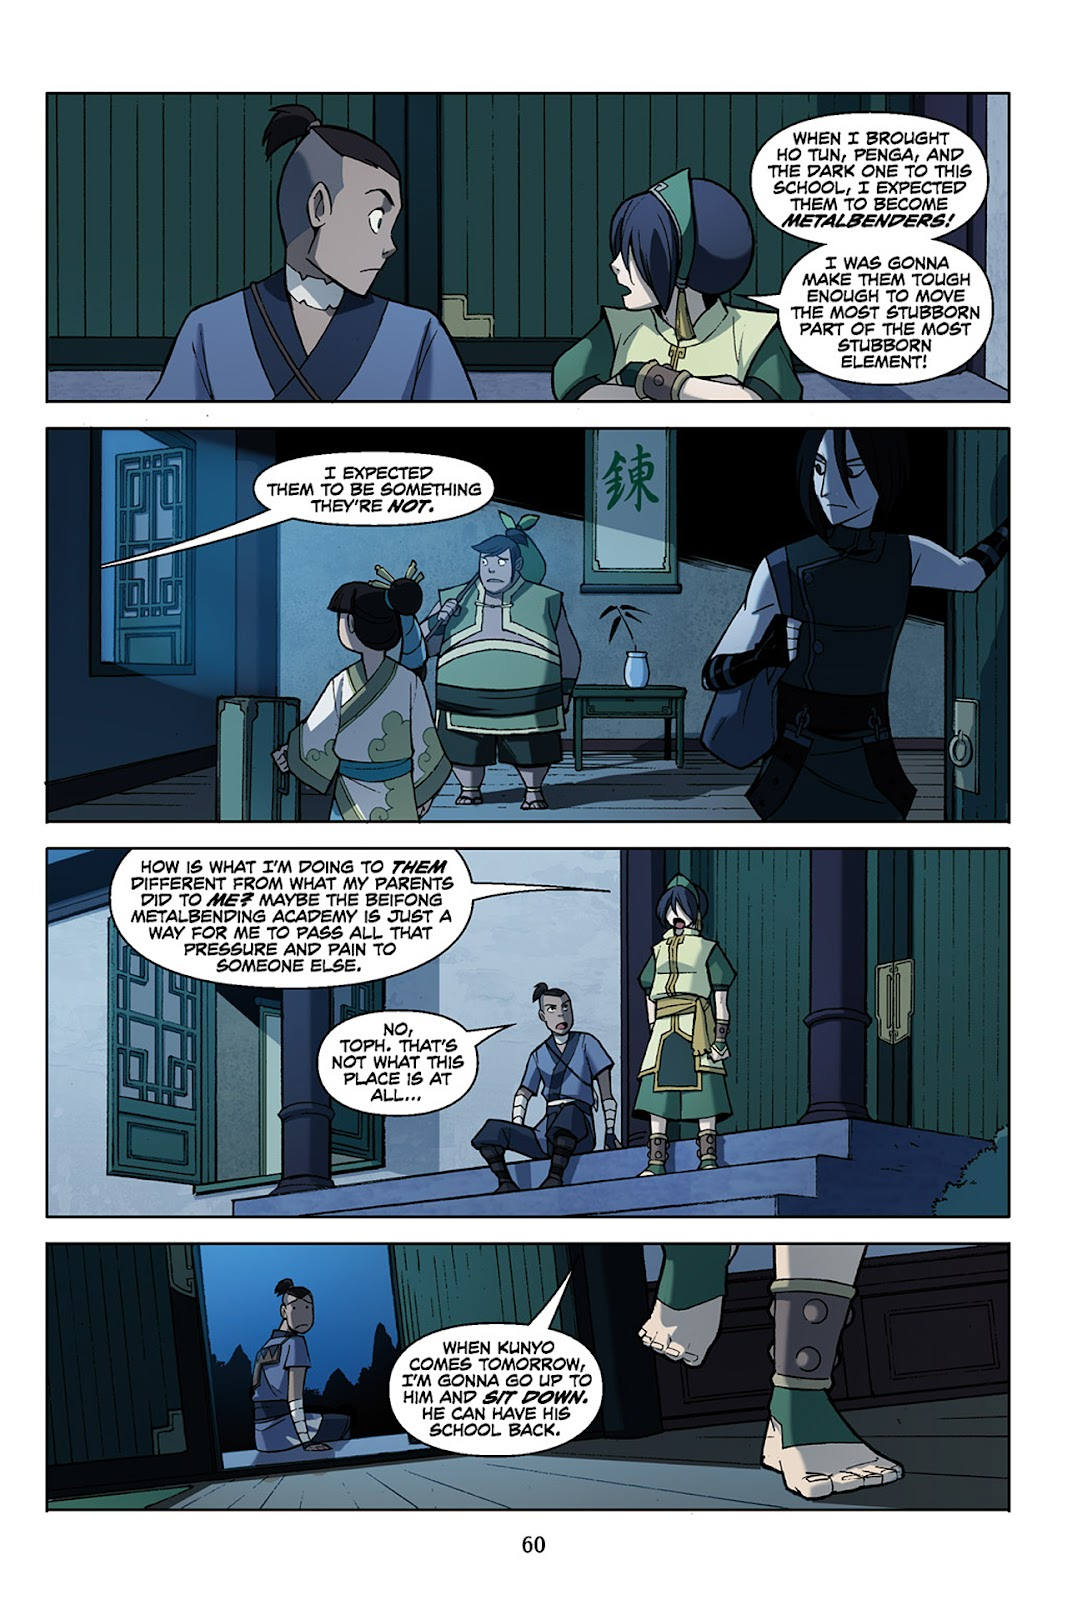 Comic Nickelodeon Avatar: The Last Airbender - The Promise issue 2